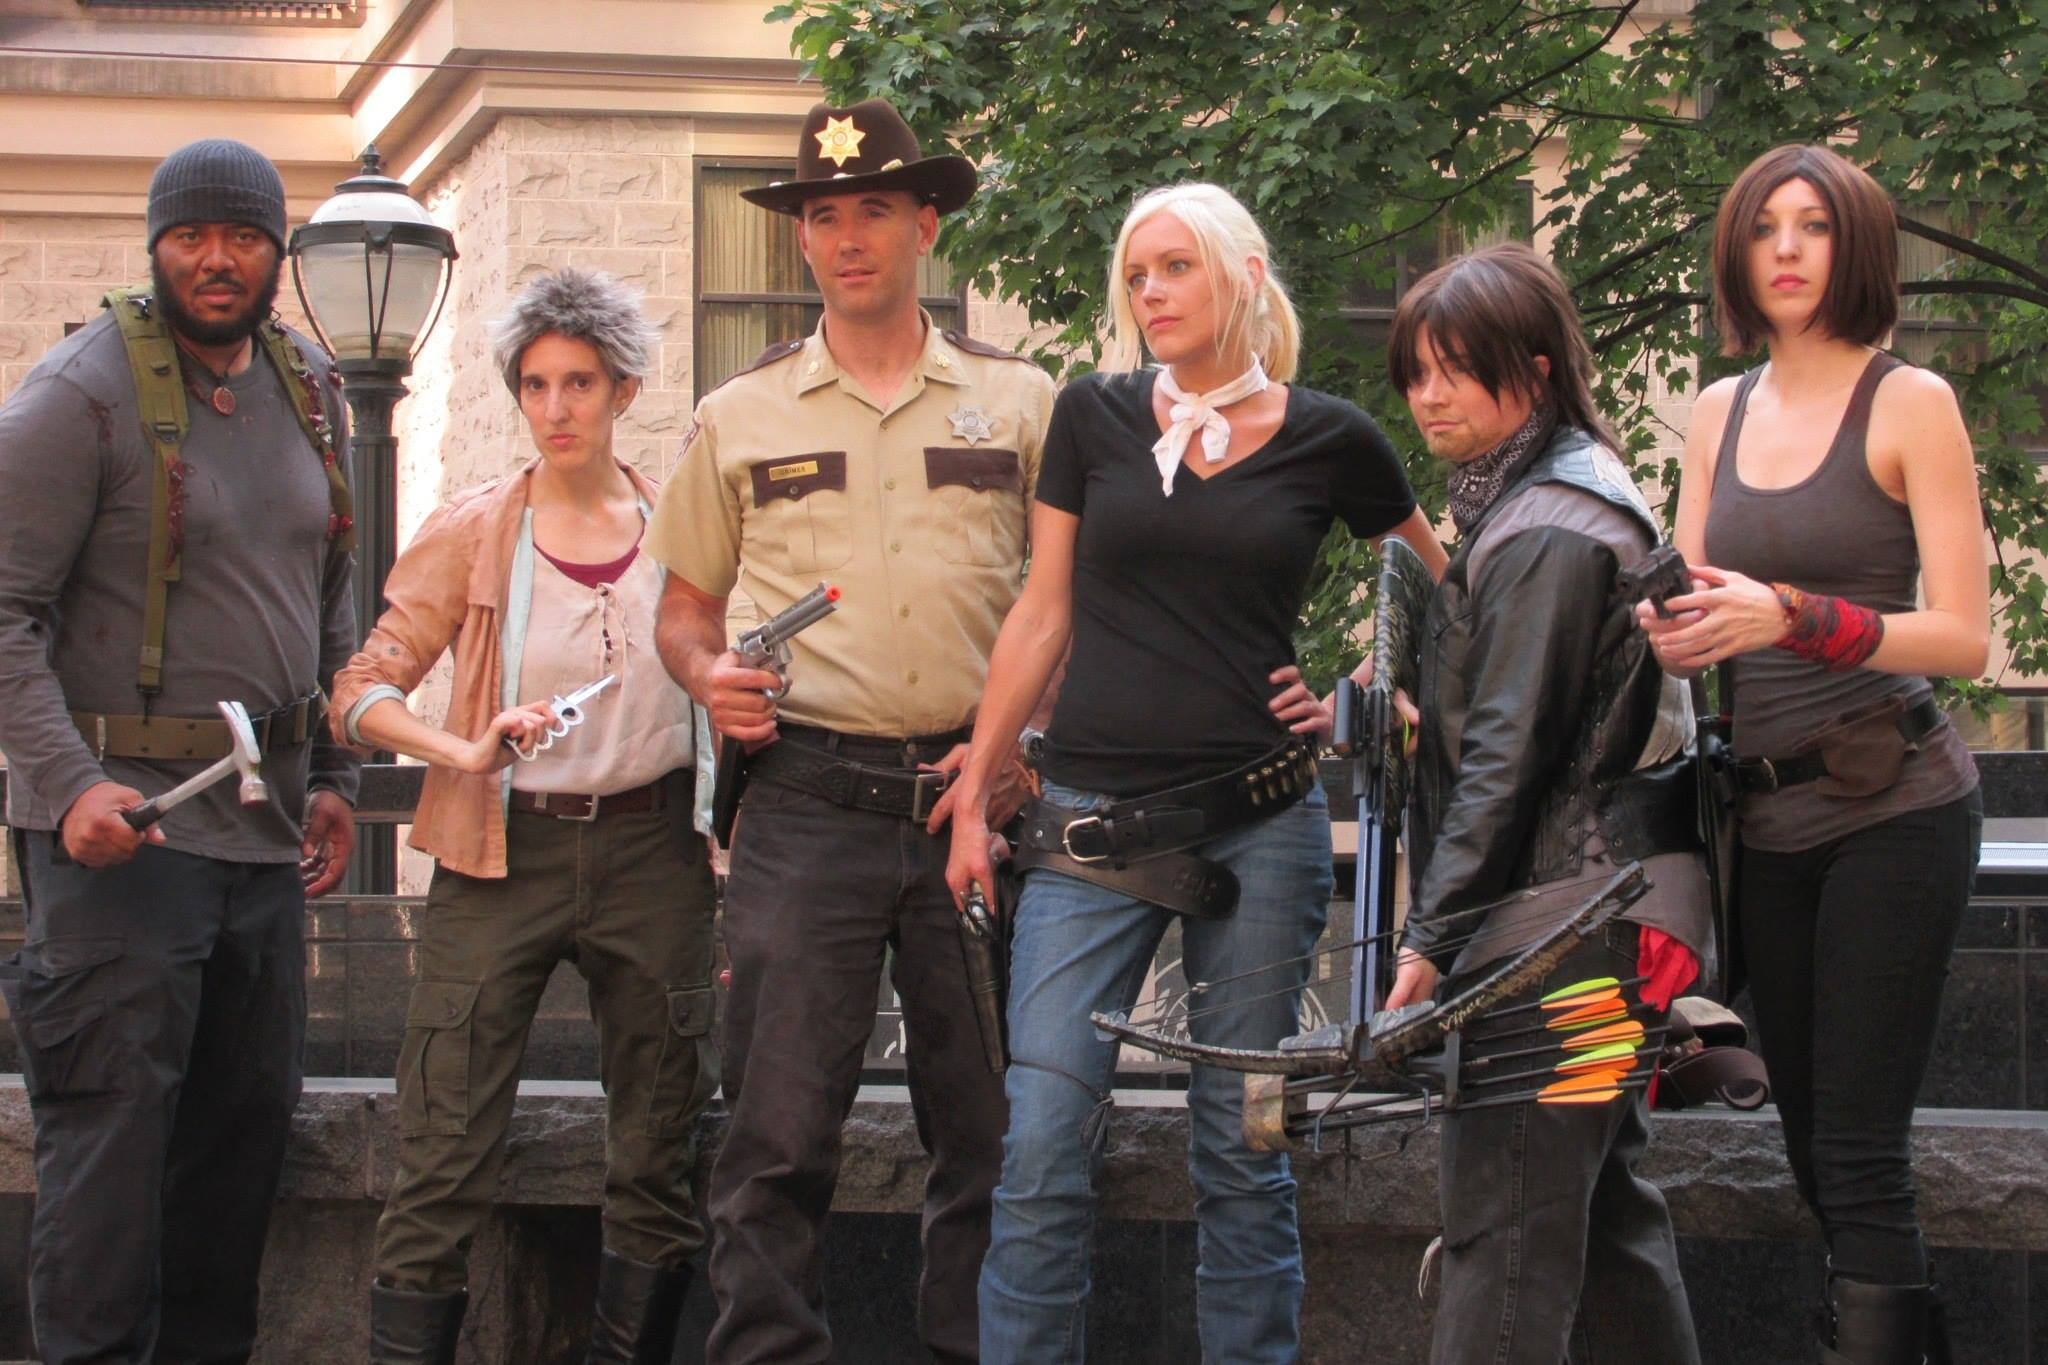 Dragon Con Walking Dead Cosplay